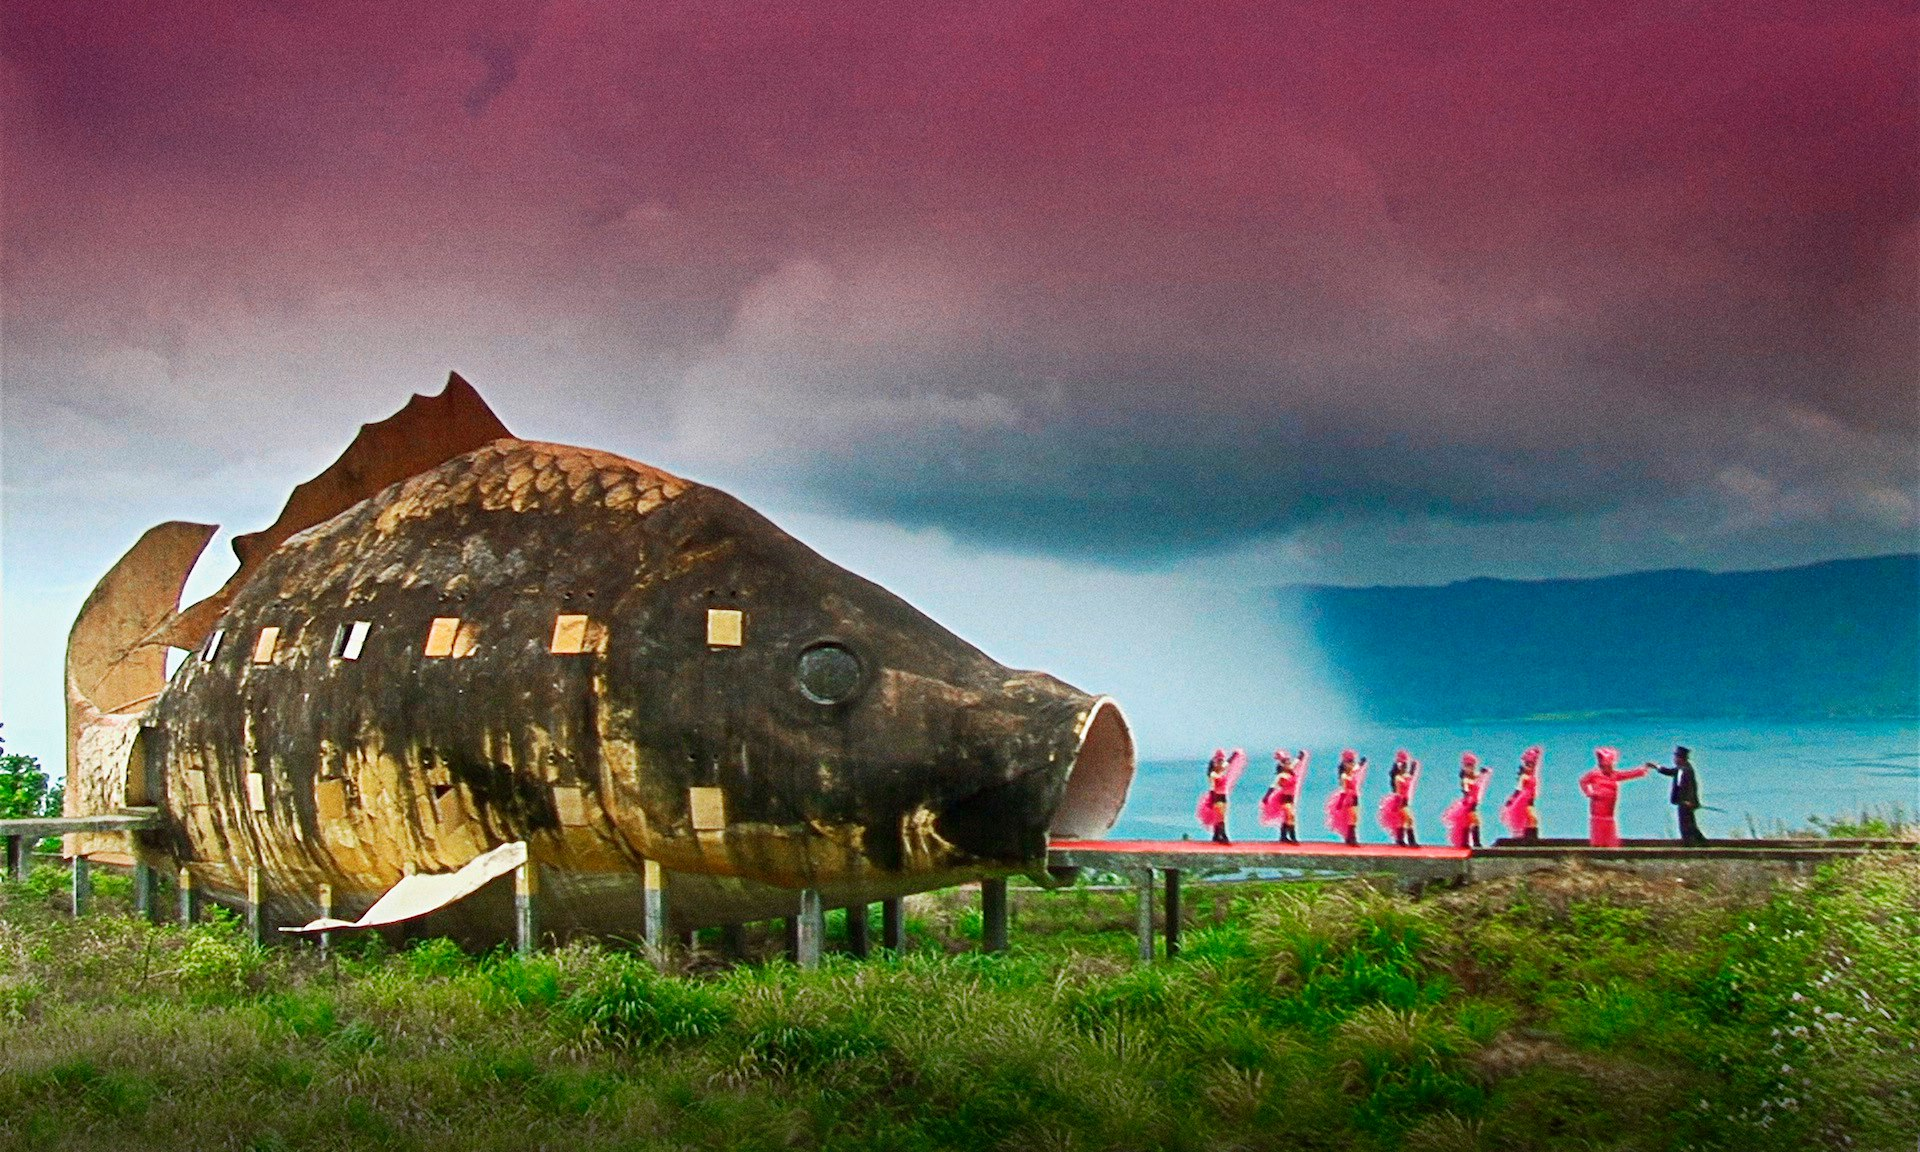 The Act of Killing01